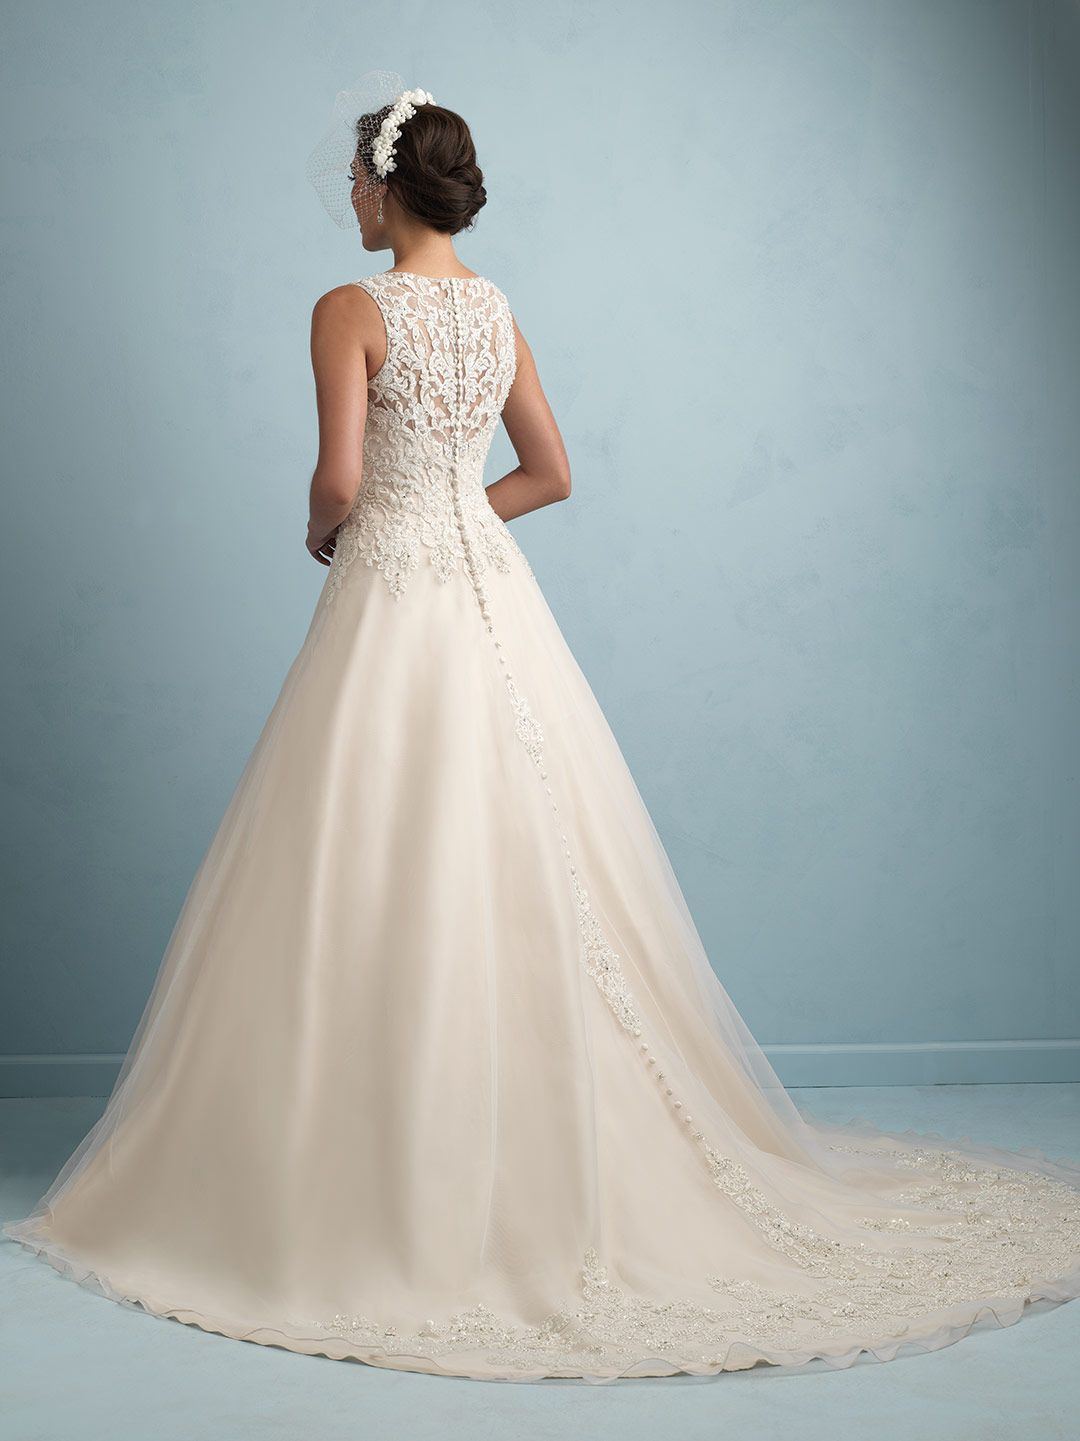 Allure #9200. Love! But with a strapless, sweetheart neckline ...